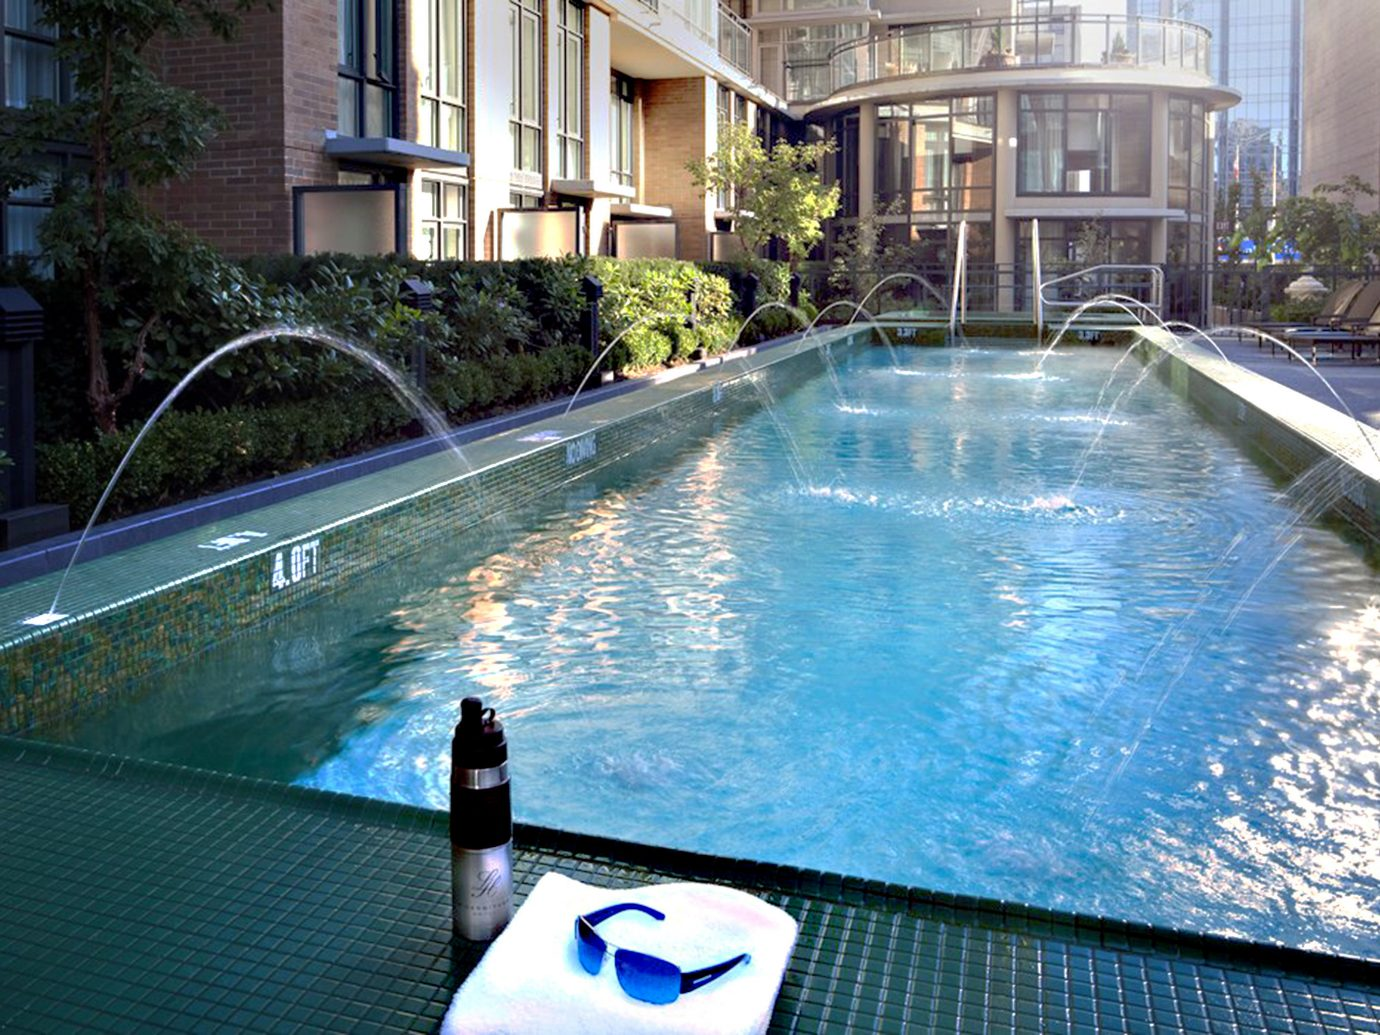 Boutique Classic Hotels Luxury Play Pool building water outdoor swimming pool leisure property reflecting pool condominium backyard estate Resort